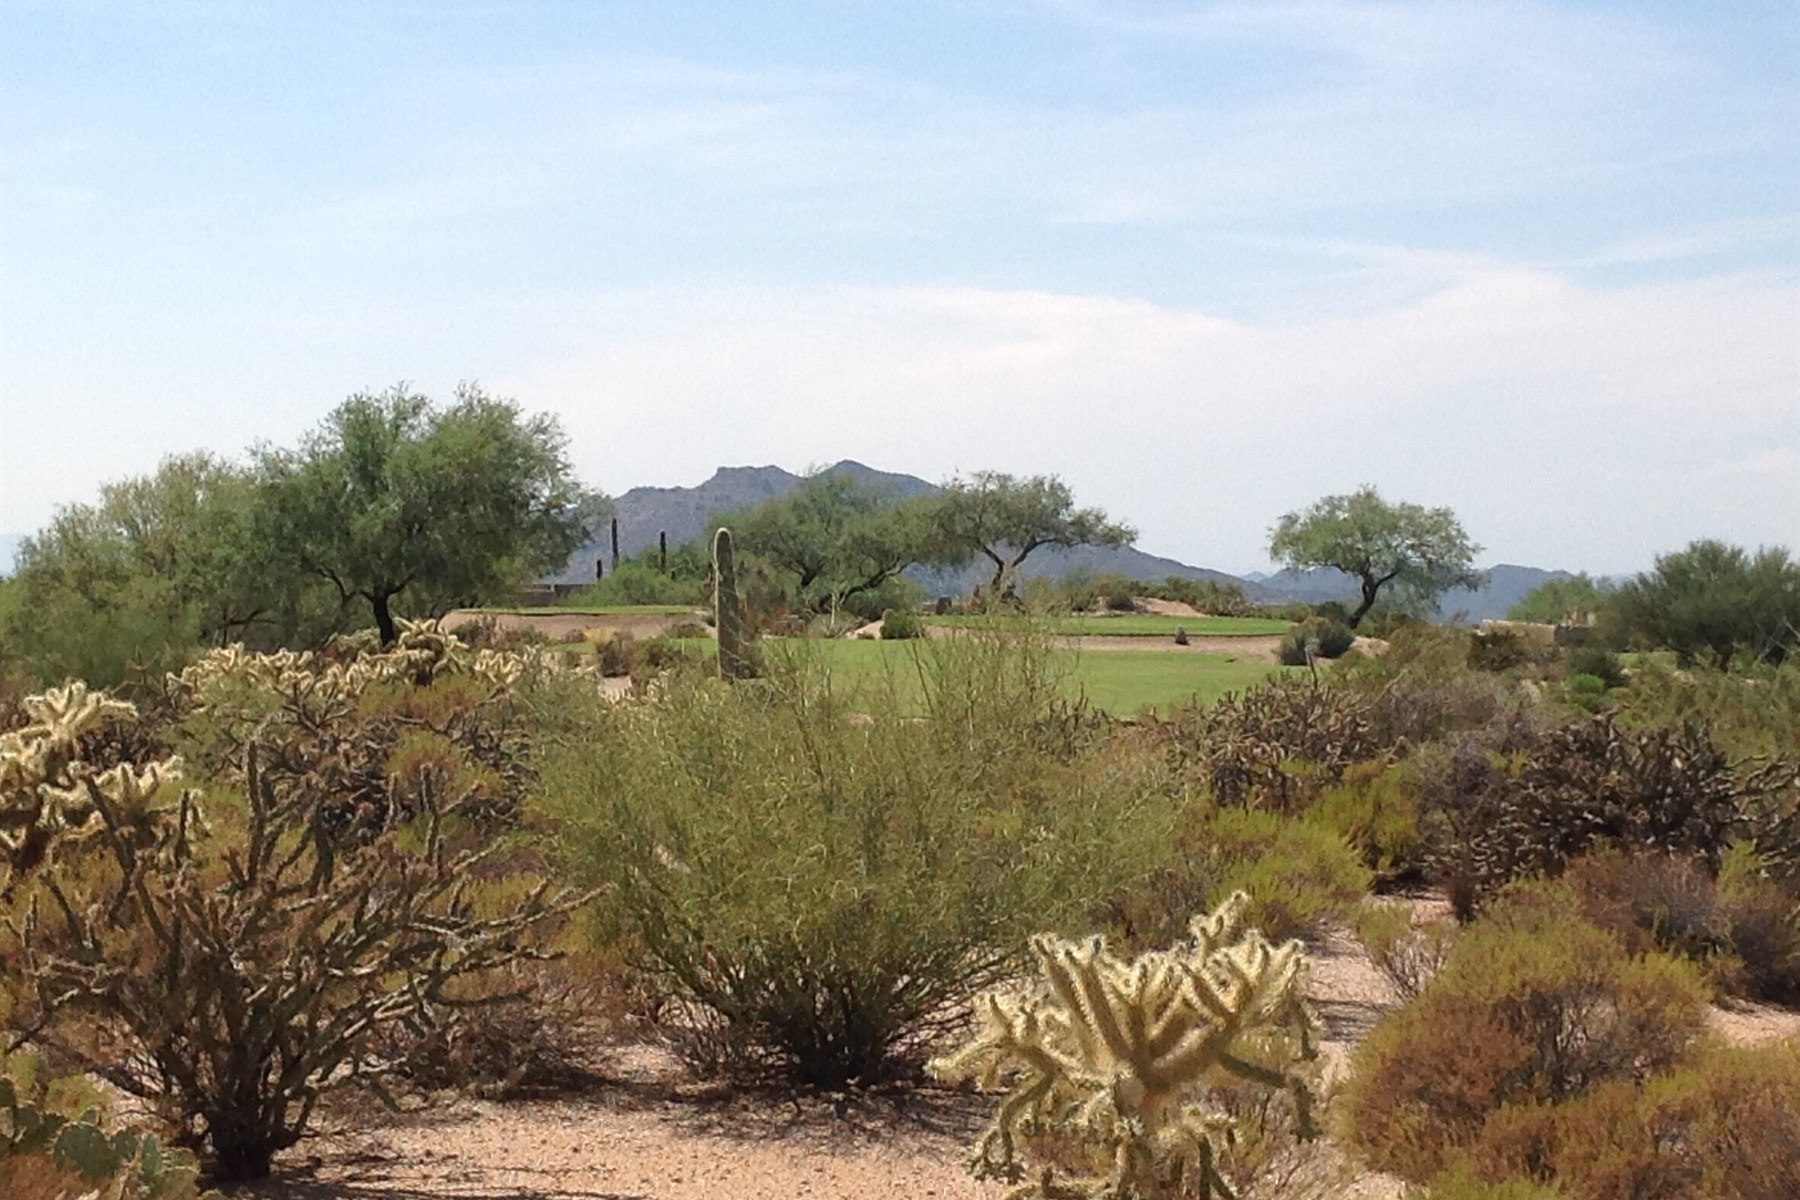 Terreno para Venda às Located in the Village of Sunrise on the 3rd hole of the Renegade course. 10162 E Sundance Trl 227 Scottsdale, Arizona, 85262 Estados Unidos